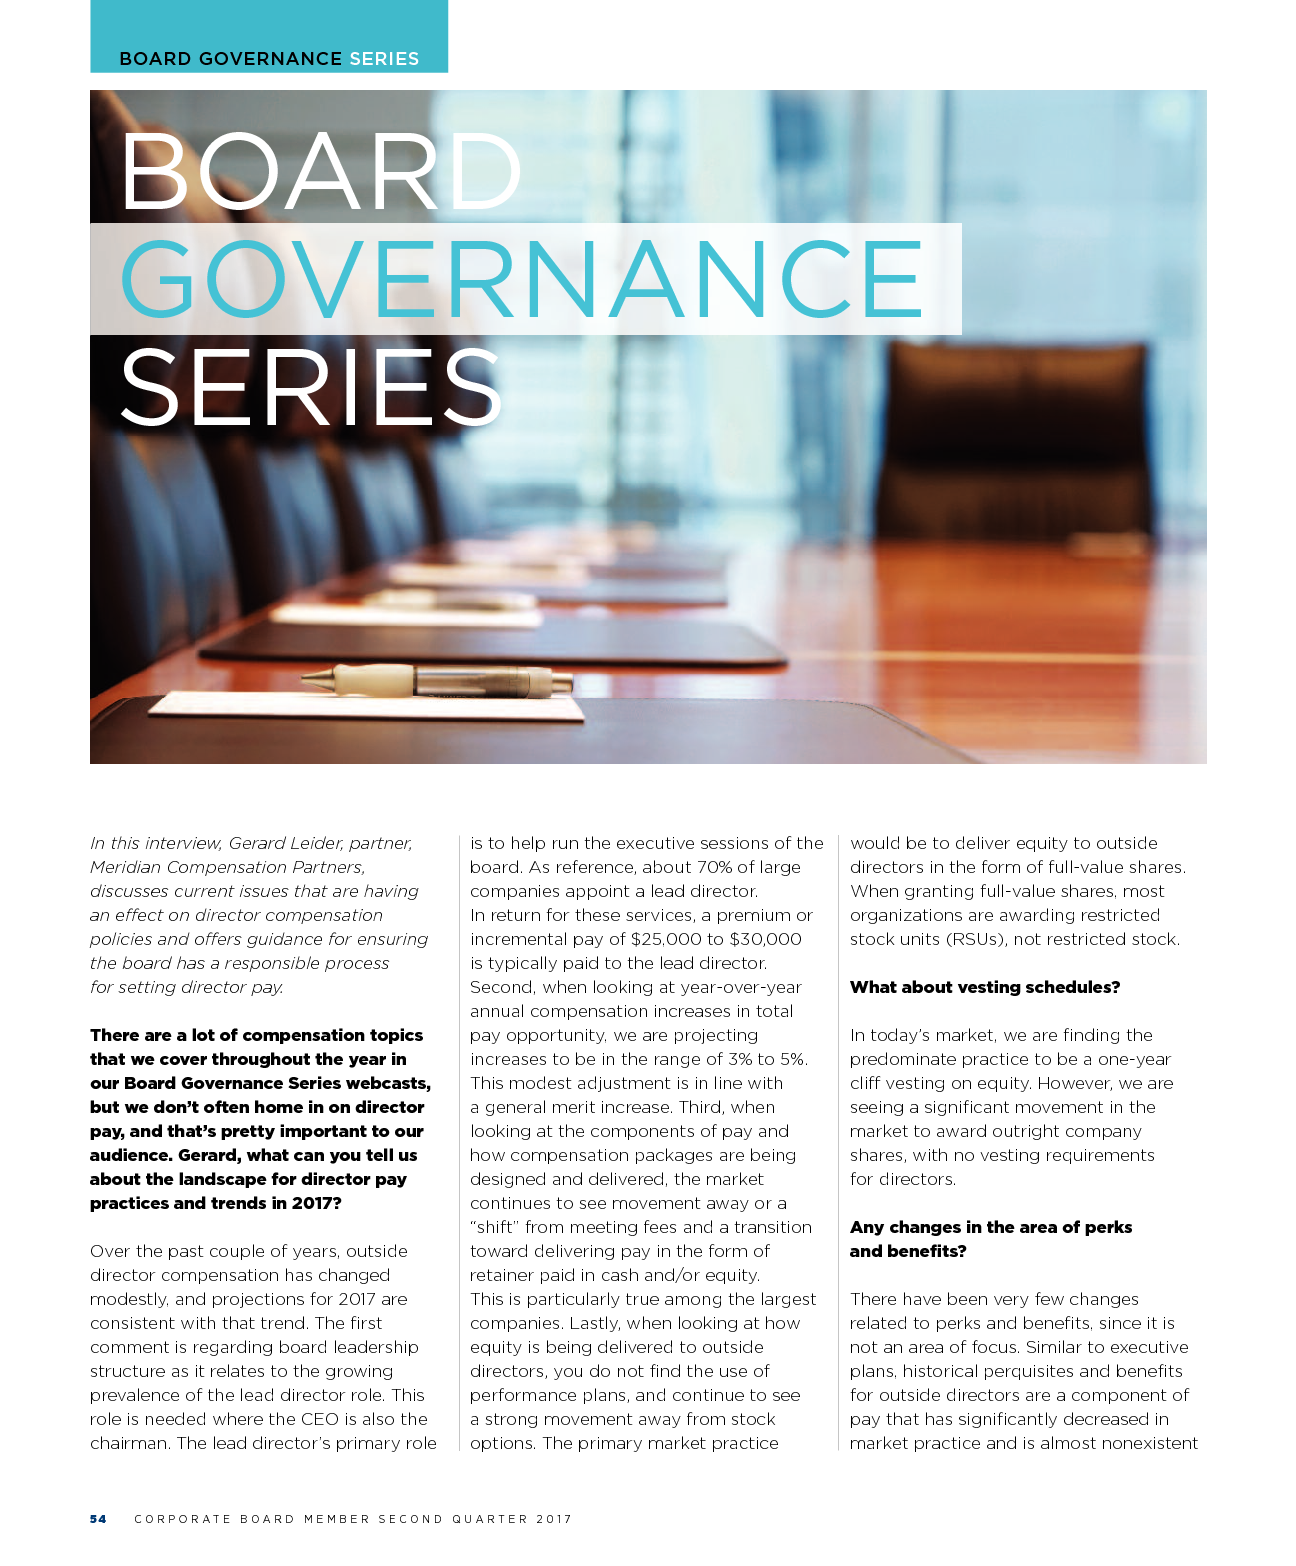 Board Governance Series - Corporate Board Member 2nd Quarter 2017 (PDF)